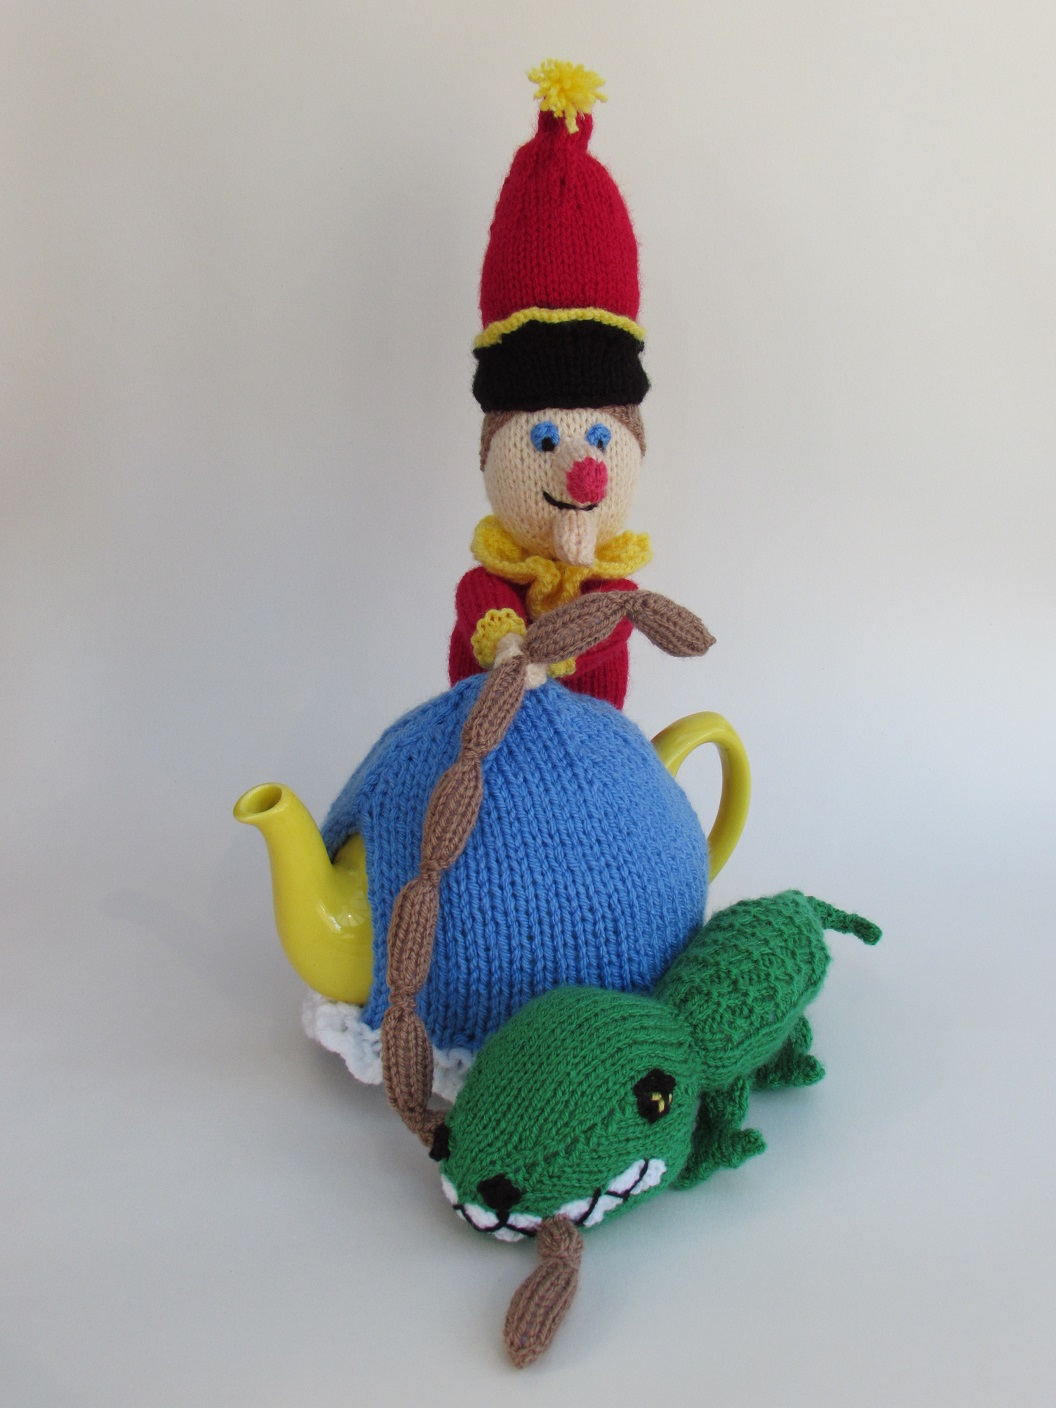 Mr Punch knitting pattern